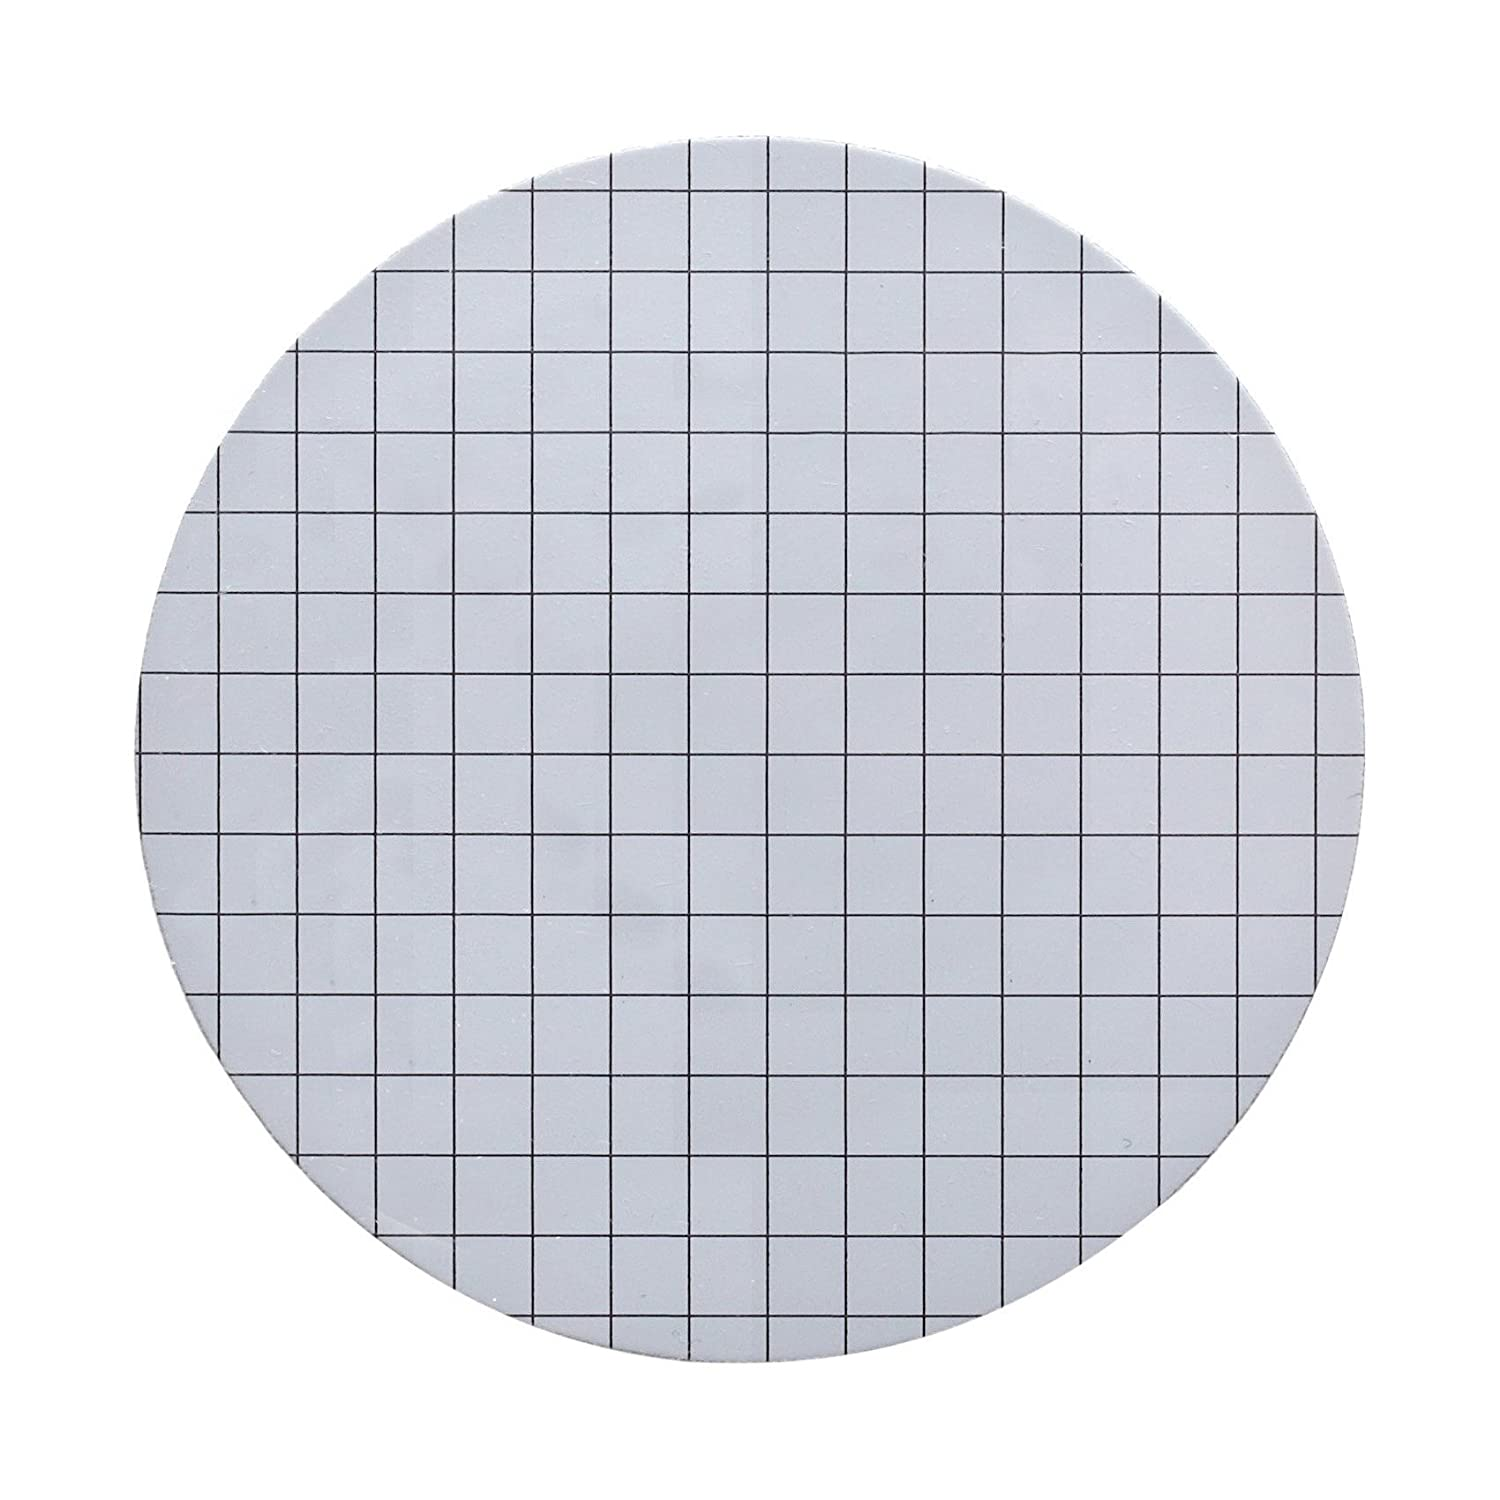 Whatman 7148-002 White Mixed Ester Gridded Membrane Filters, 25mm Diameter, 0.8 Micron (Pack of 100) WHA-7148-002